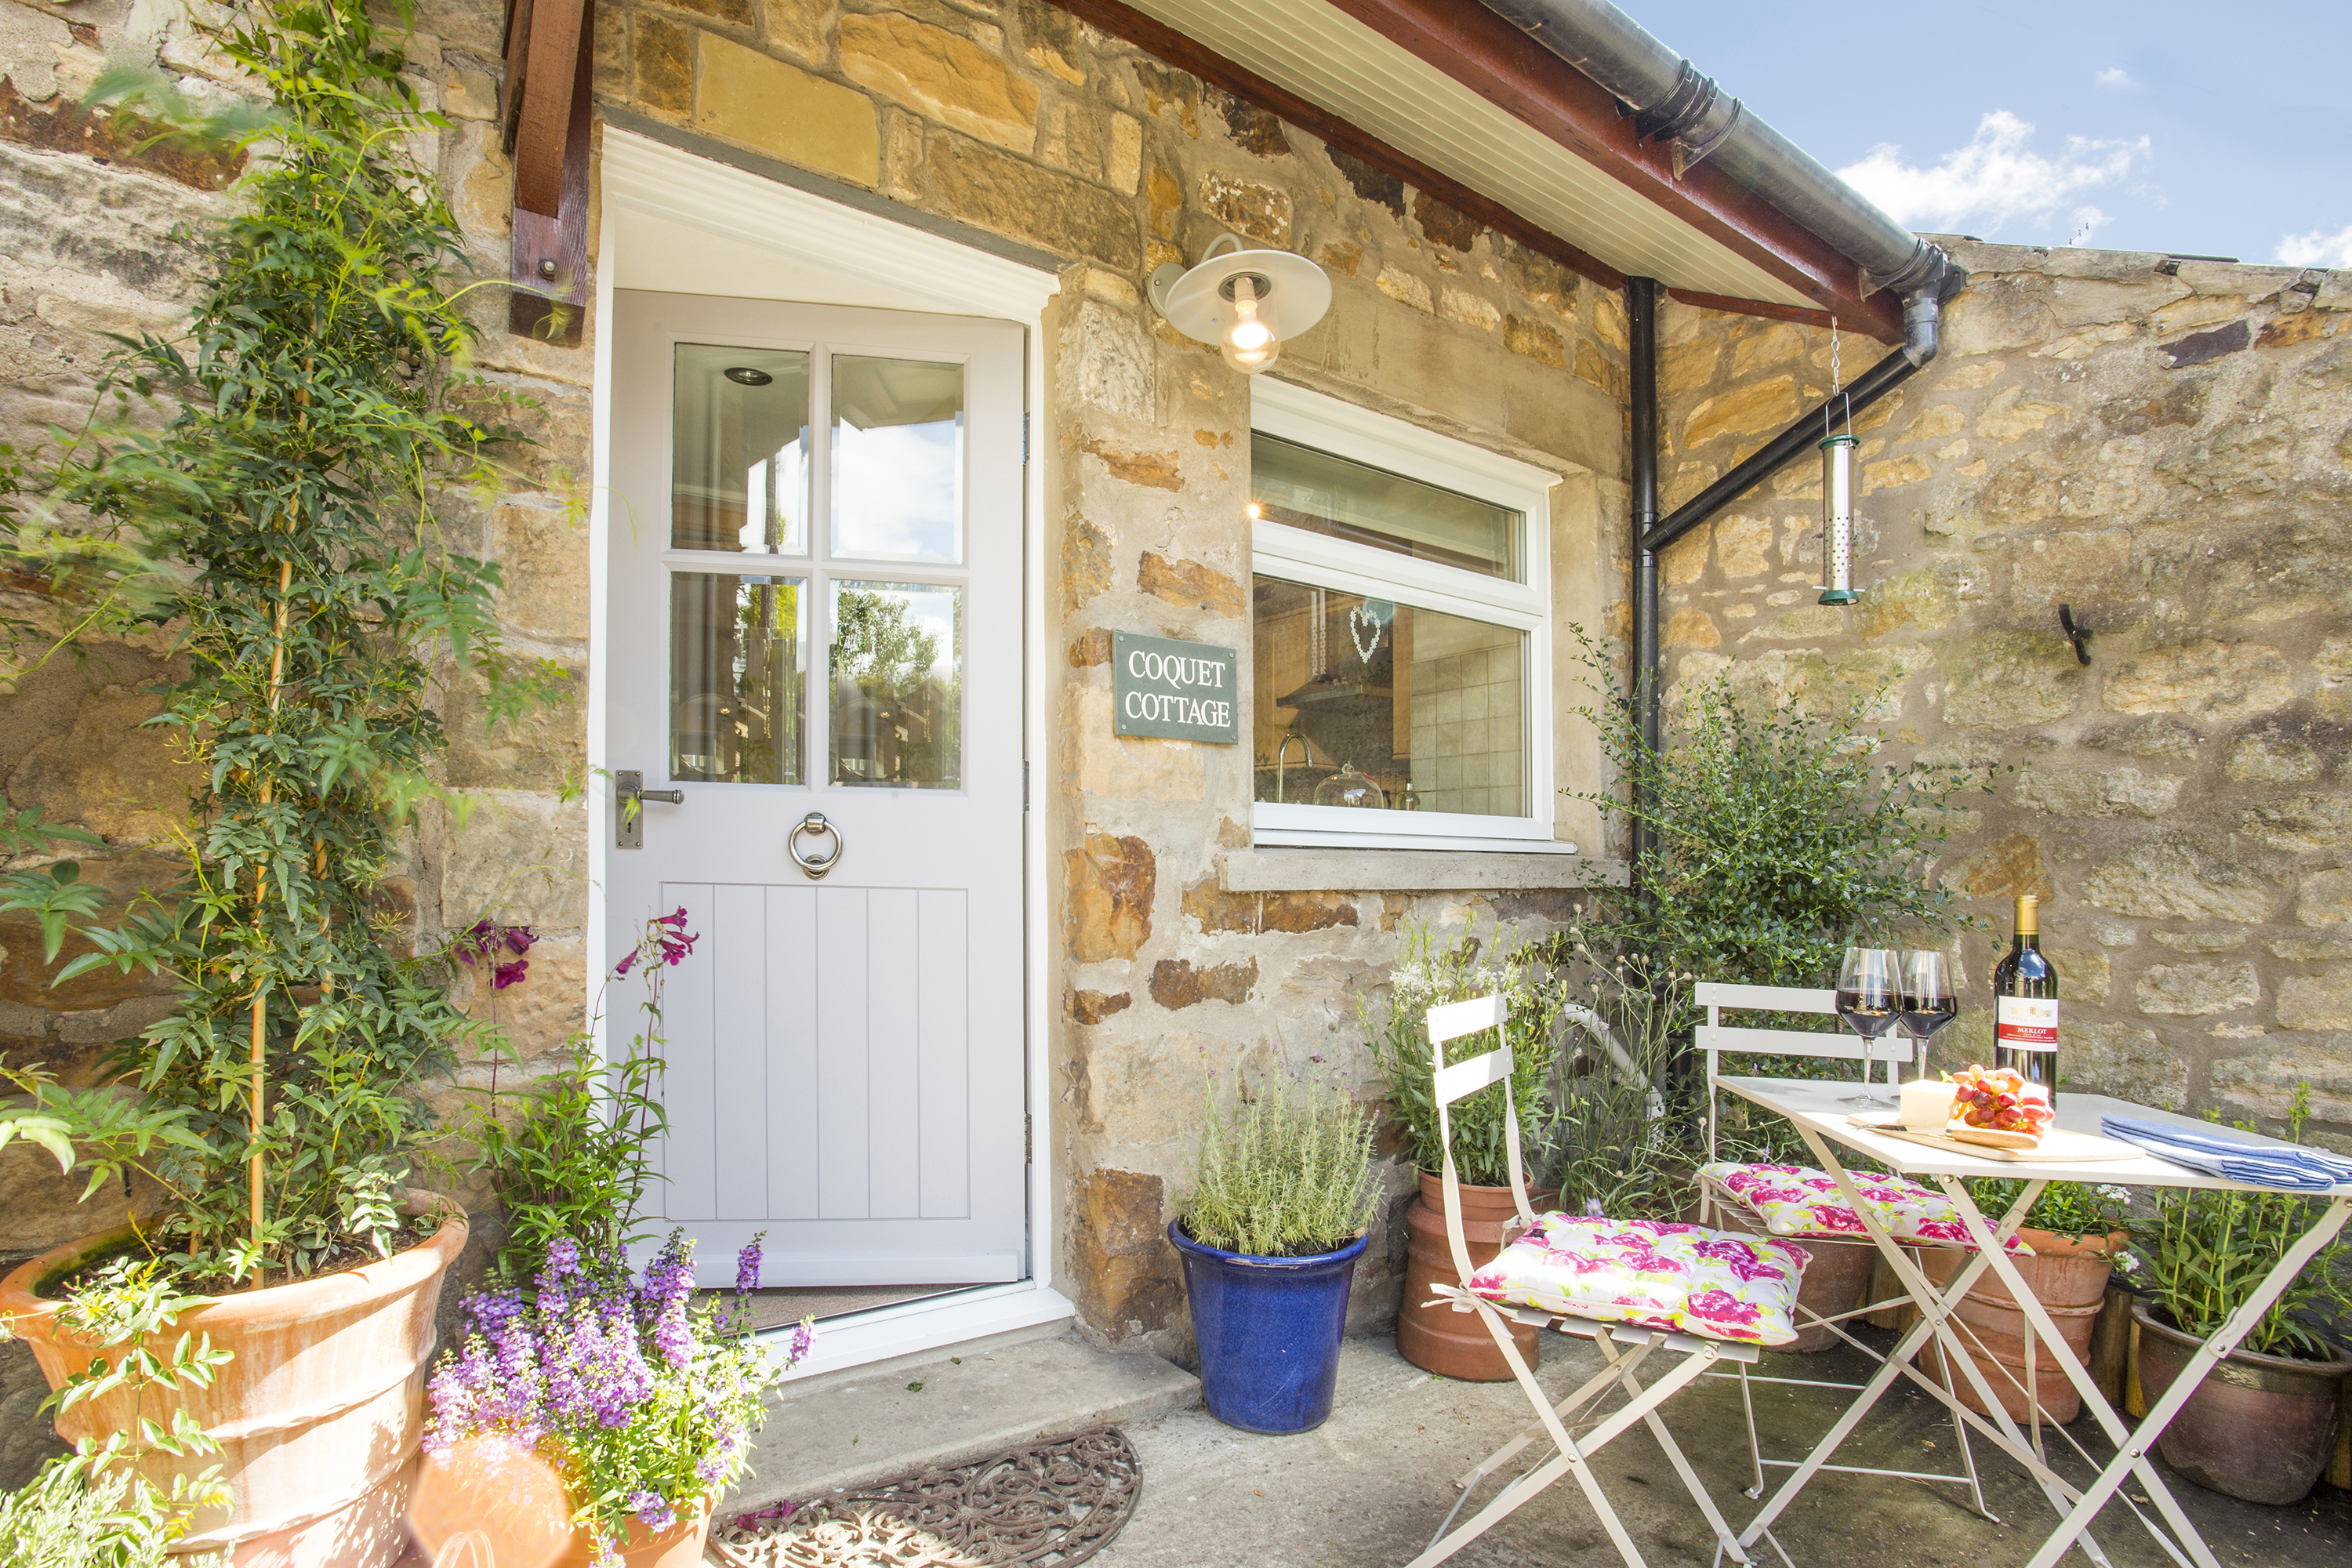 Coquet Cottage Weldon Luxury Sawdays Holiday Accommodation